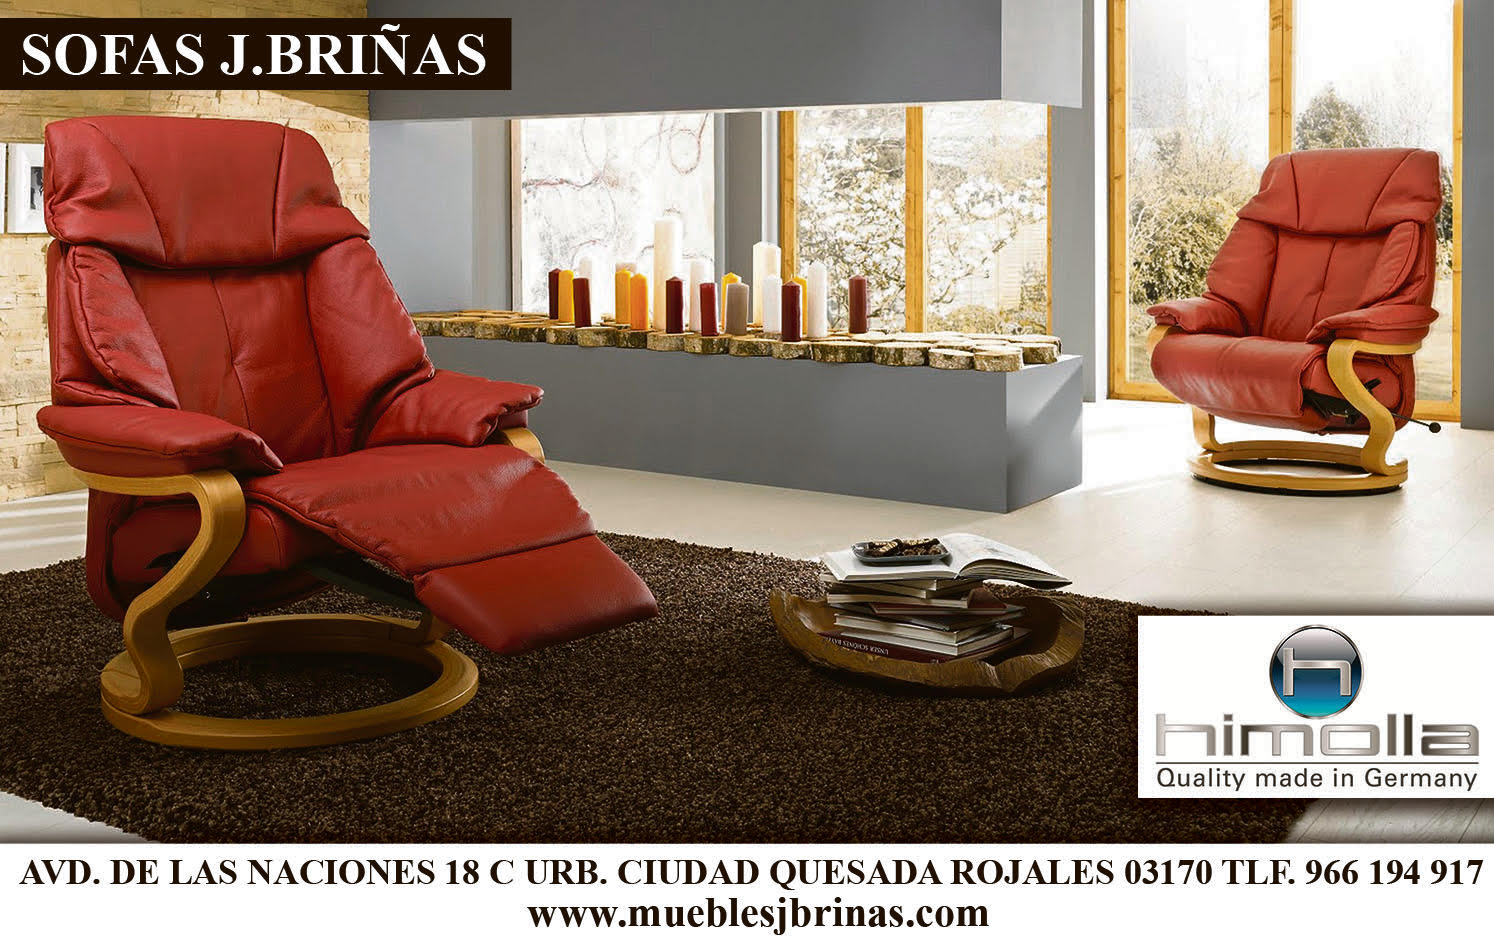 Sofaland Spain Sofas Beds And Garden Furniture In Quesada Where To Buy Things